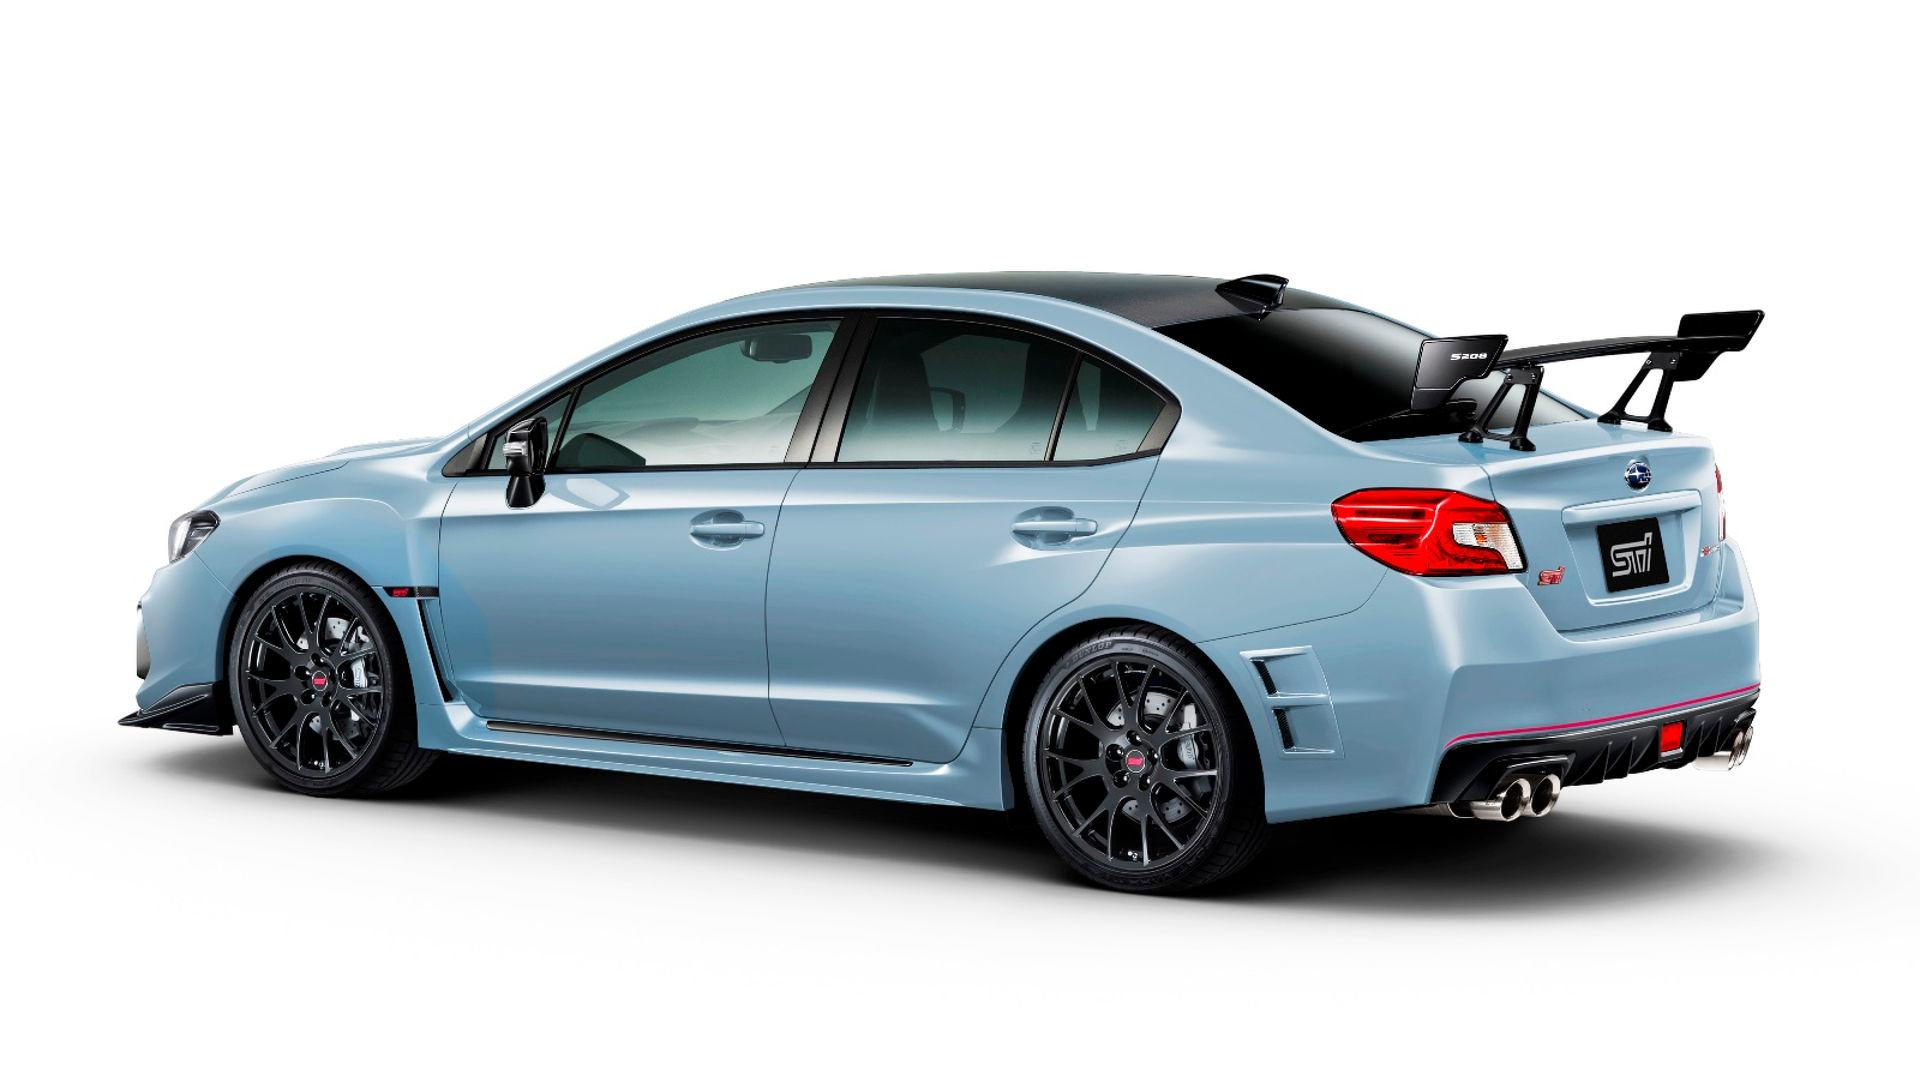 Jdm Cars For Sale >> Subaru unveils JDM-only limited edition WRX STI S208 - ForceGT.com